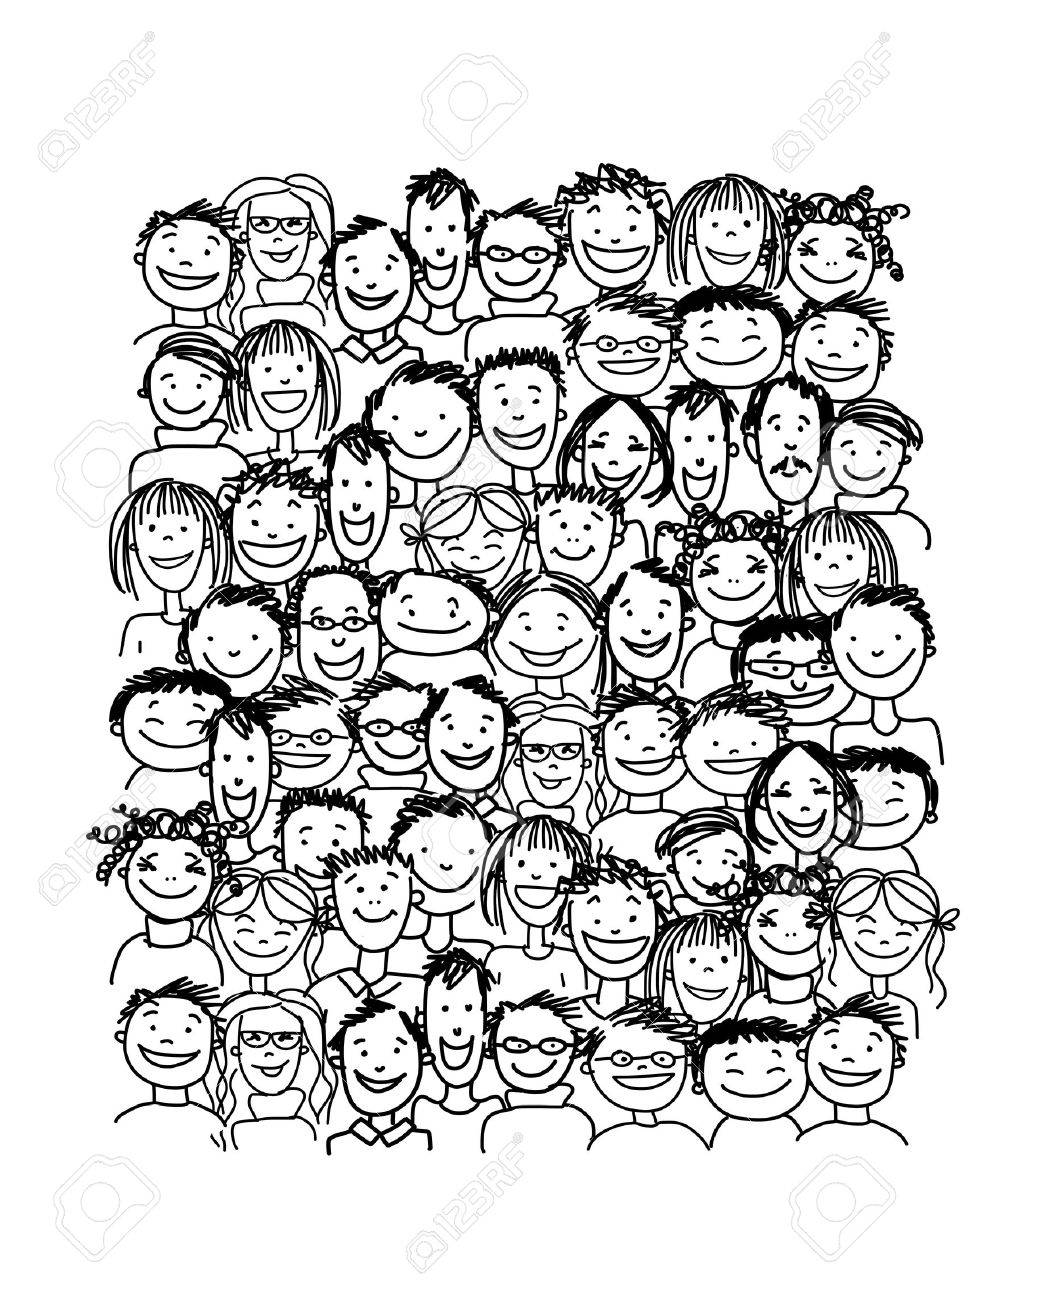 Group of people, sketch for your design Stock Vector - 37038332